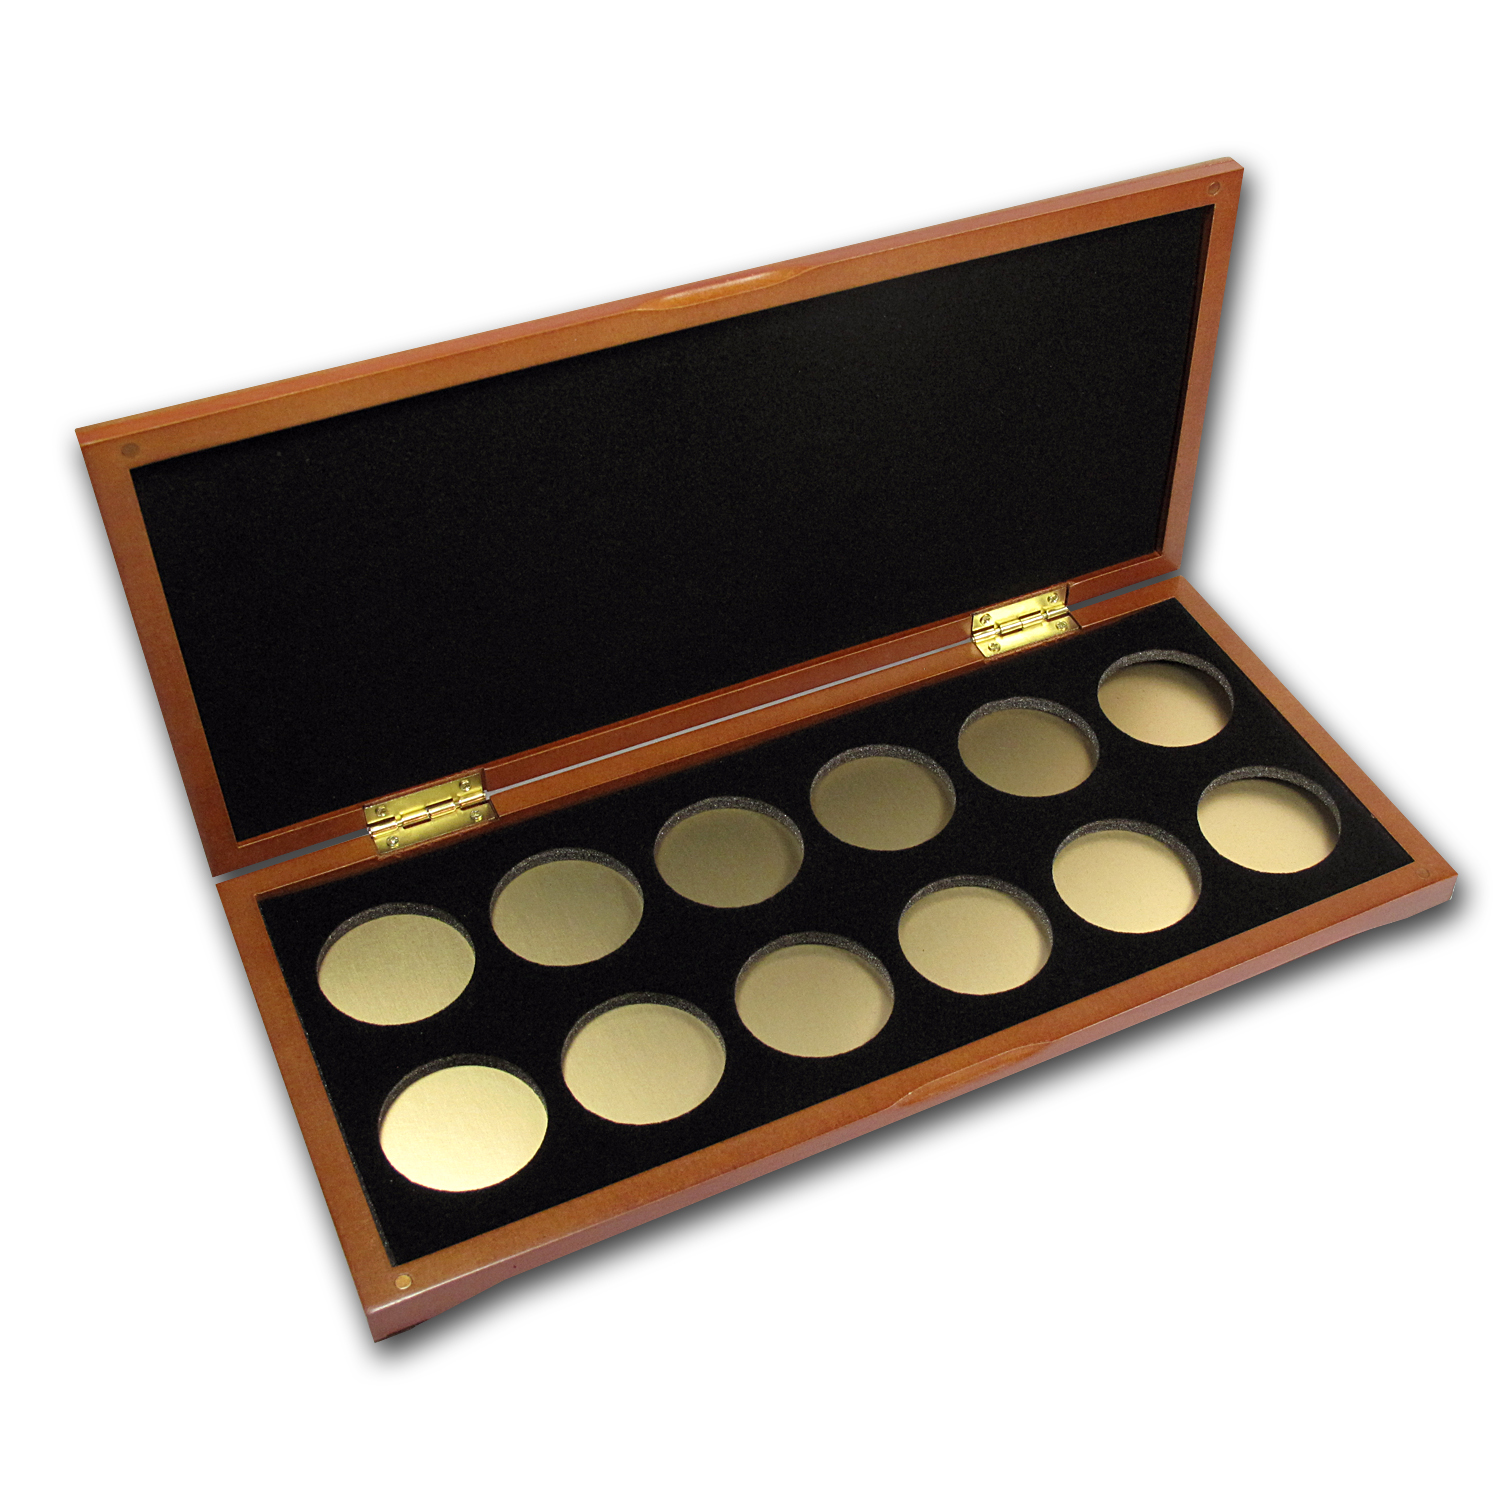 Lunar Series II (1 oz Gold) Wood Presentation Box